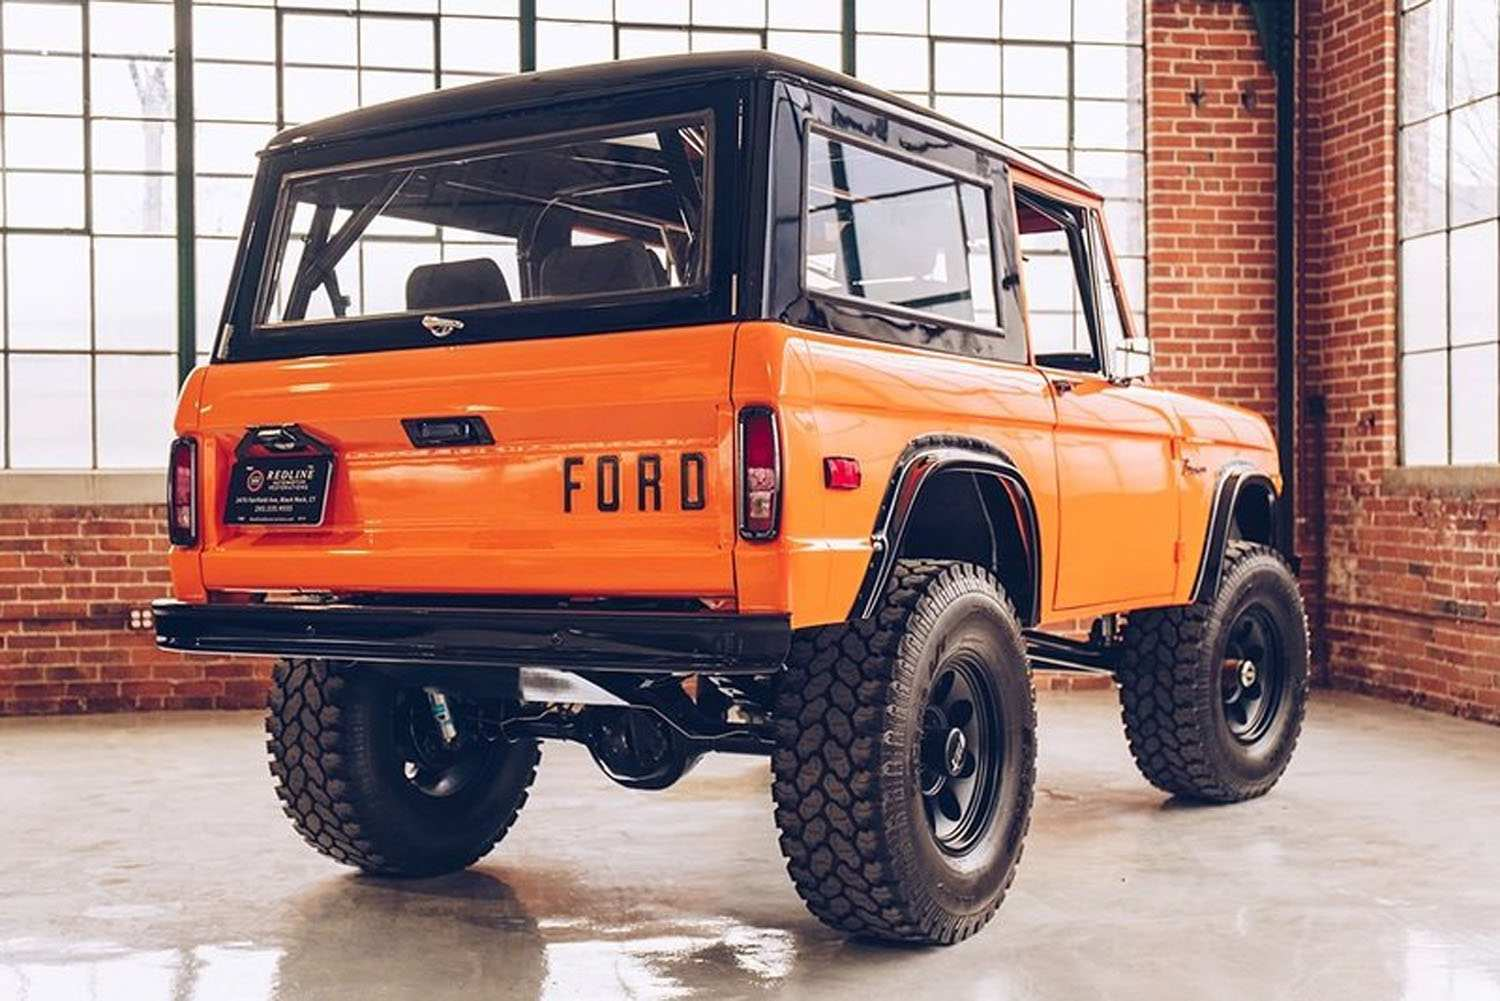 48 The Best 2020 Orange Ford Bronco Release Date And Concept